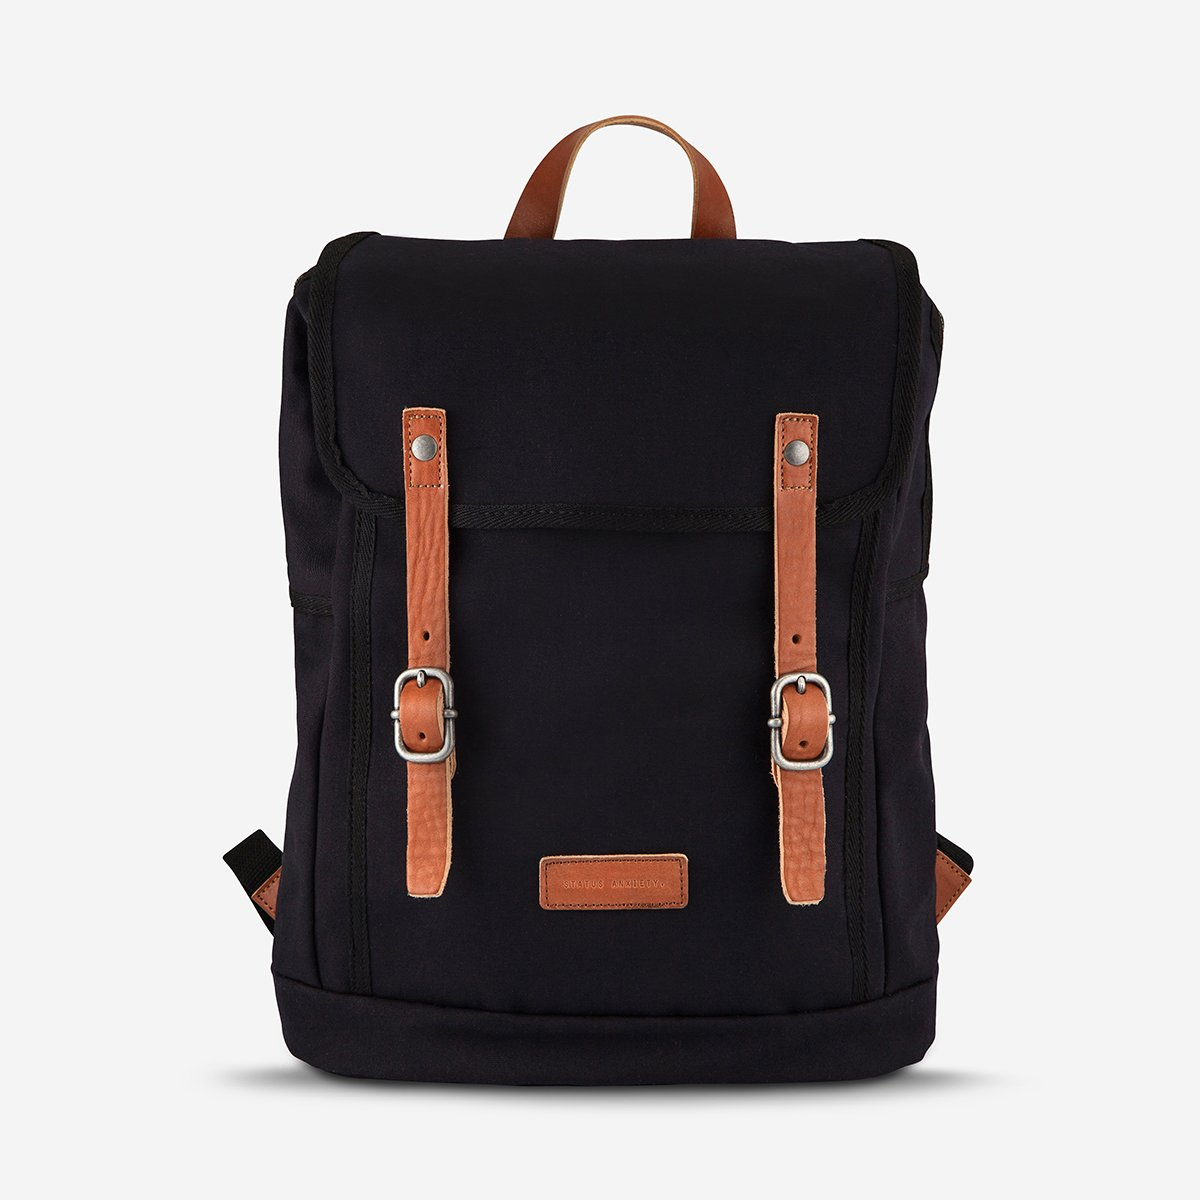 REBELLION BAG - BLACK